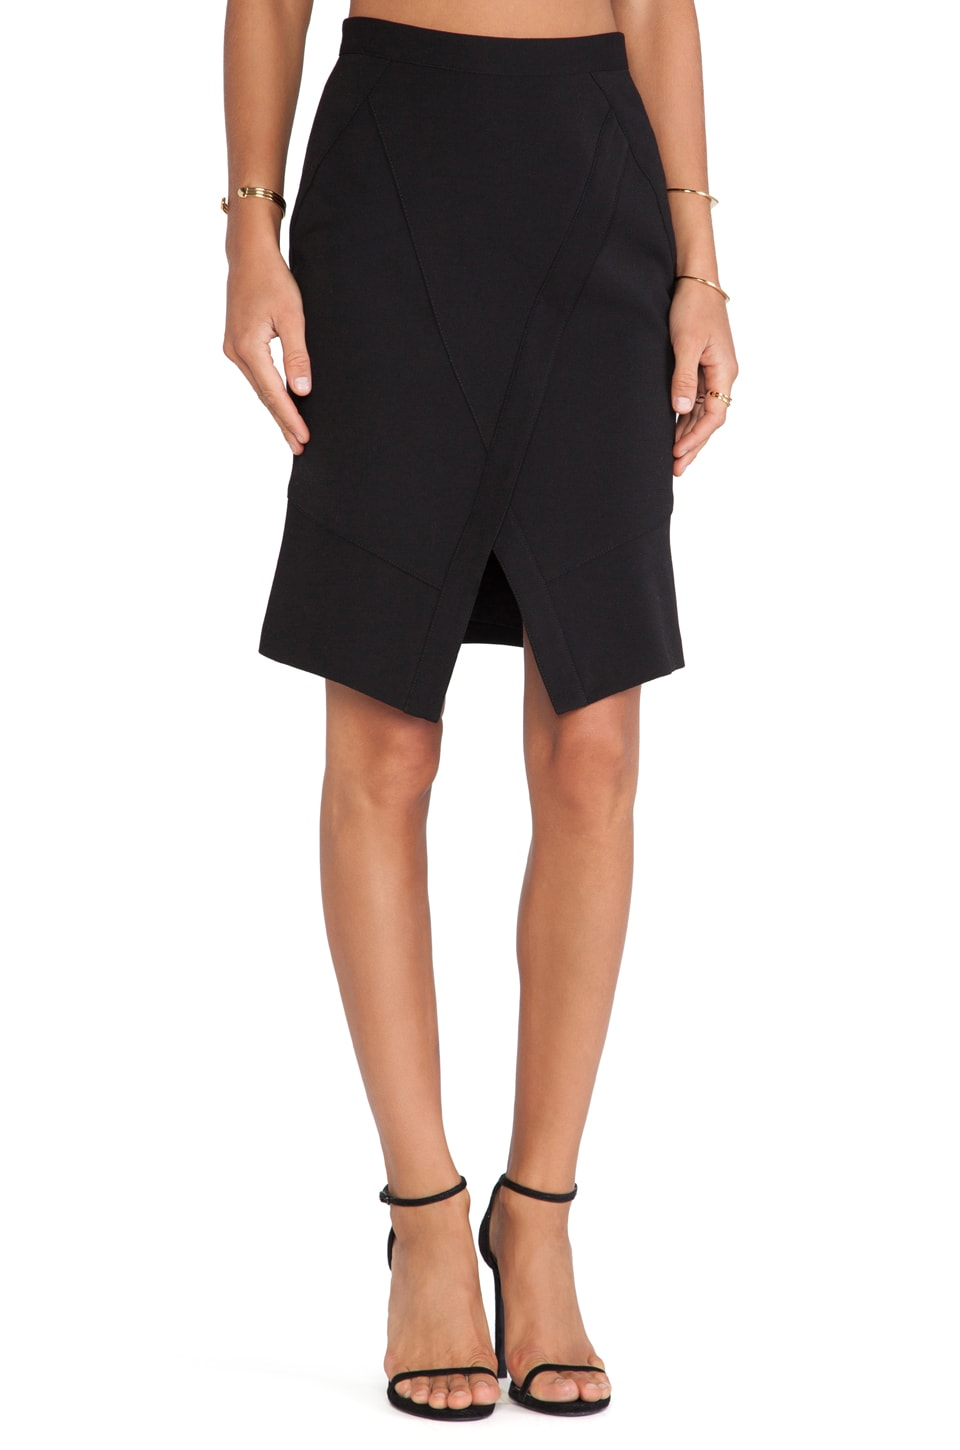 BCBGMAXAZRIA Taylon Wrap Skirt in Black